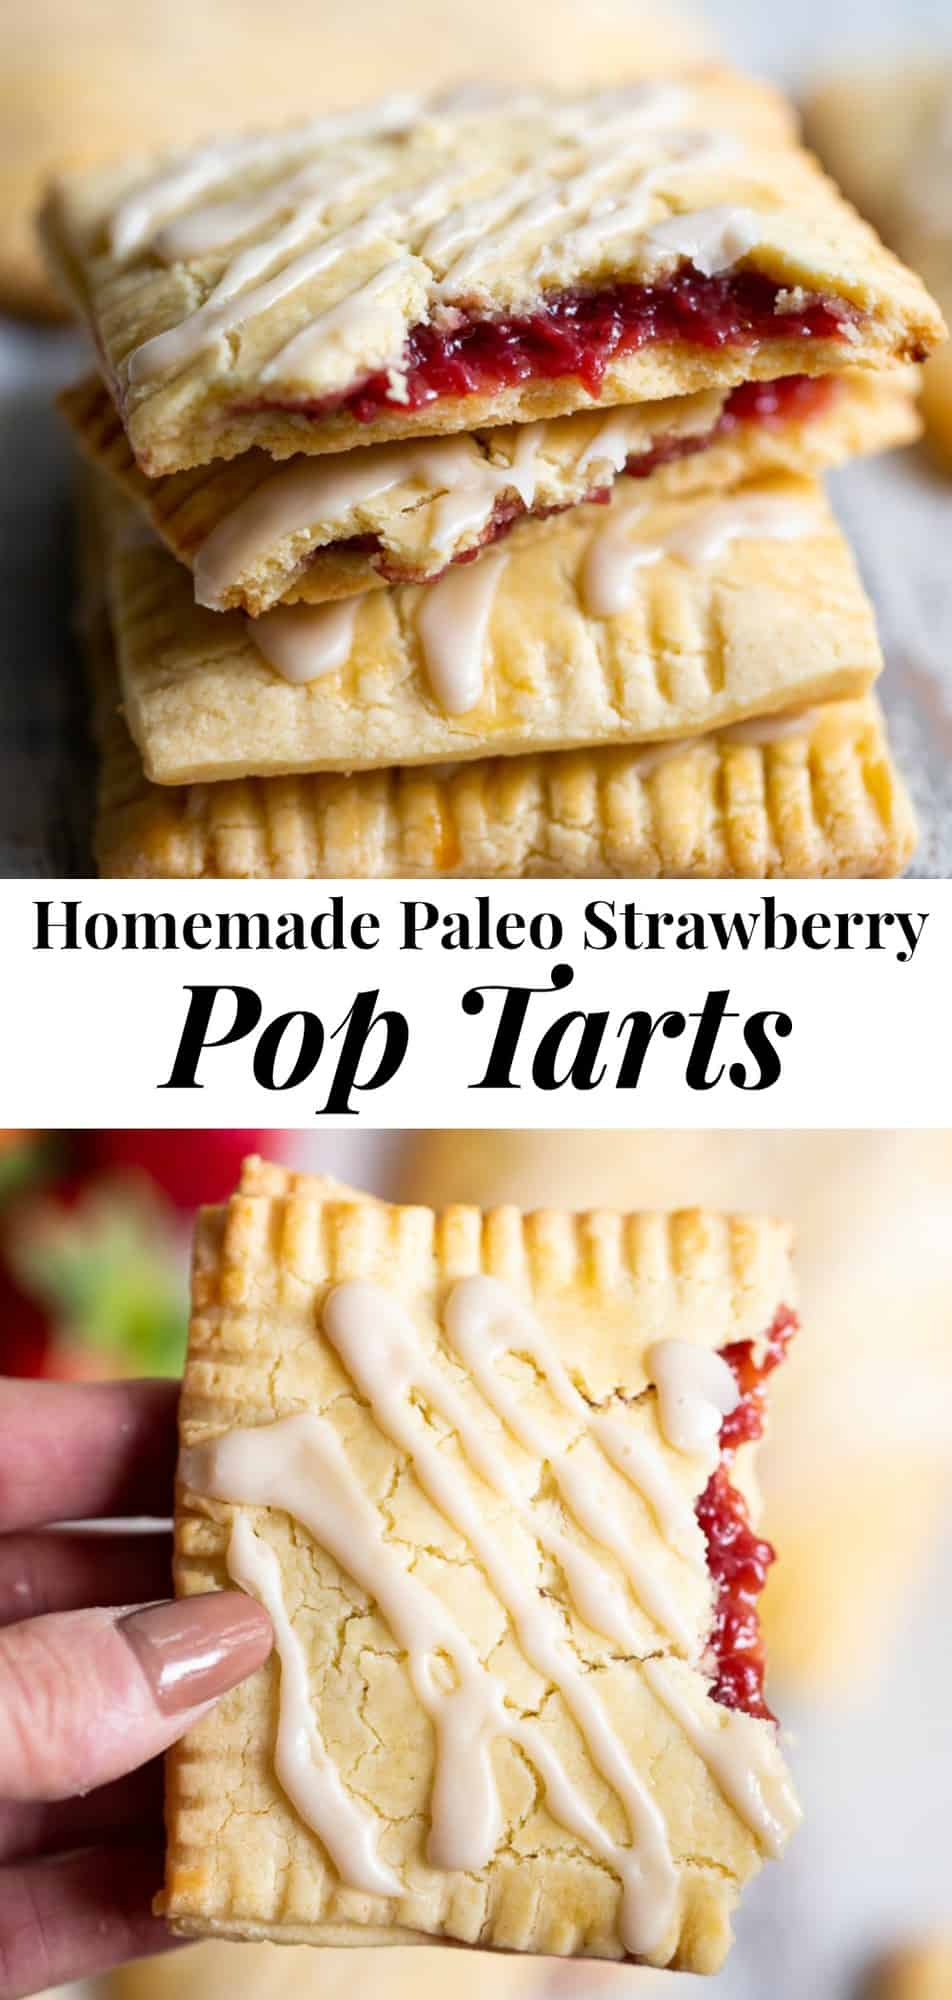 These strawberry homemade pop tarts have passed all the tests! Gooey maple-sweetened strawberry filling in a flaky grain free pastry crust with a dairy free option. Gluten-free, paleo, kid approved, fun to make and freezable! #paleo #glutenfree #poptarts